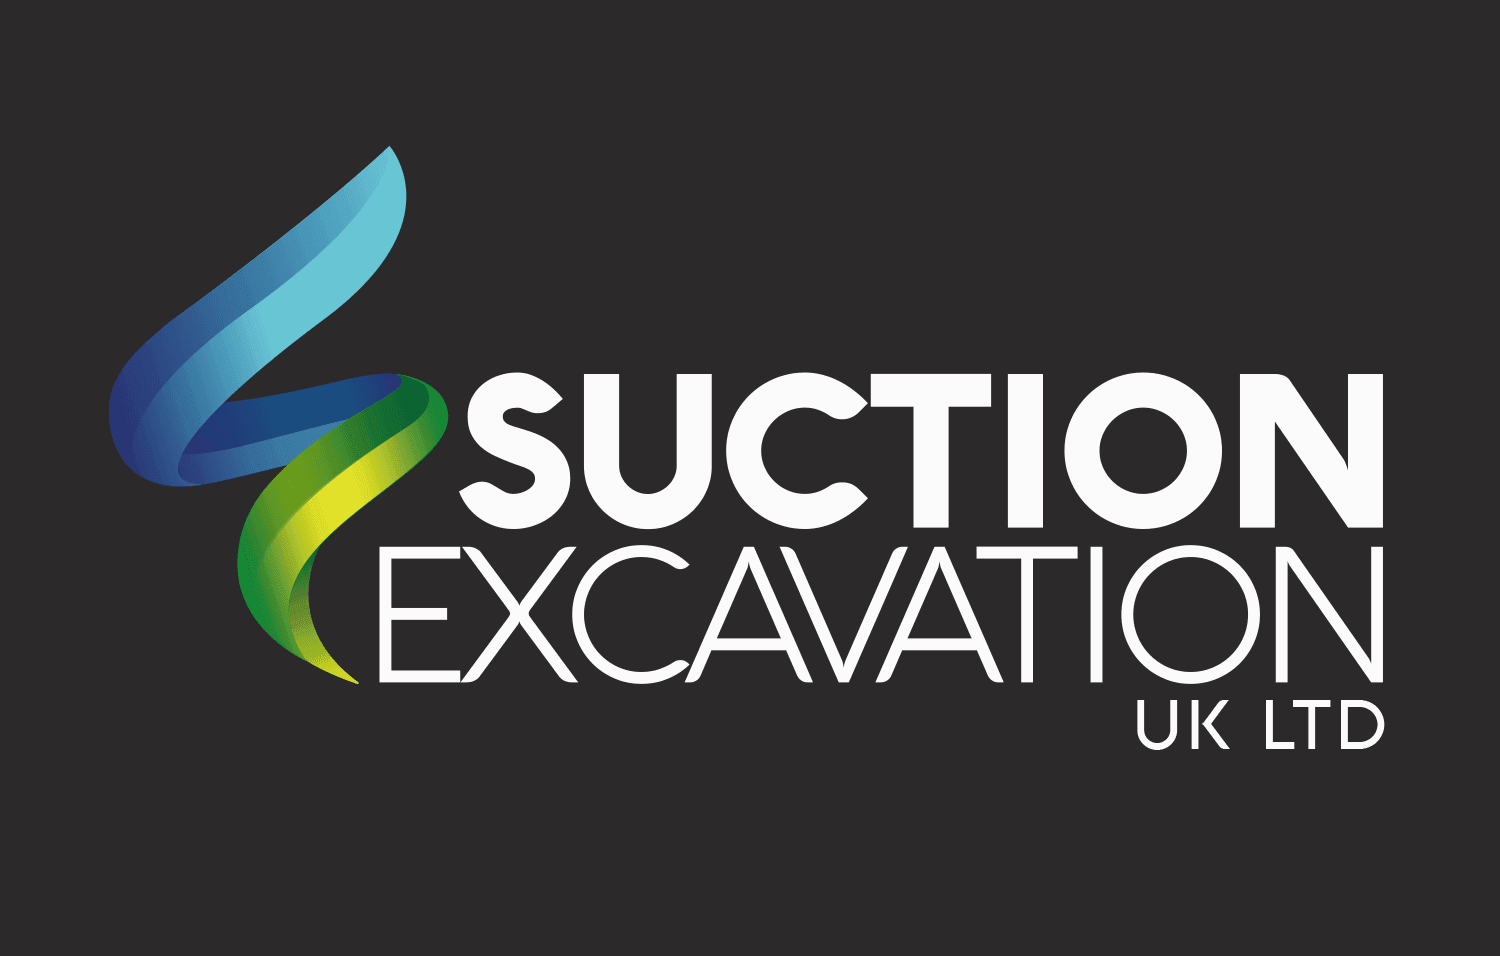 Suction Excavation UK